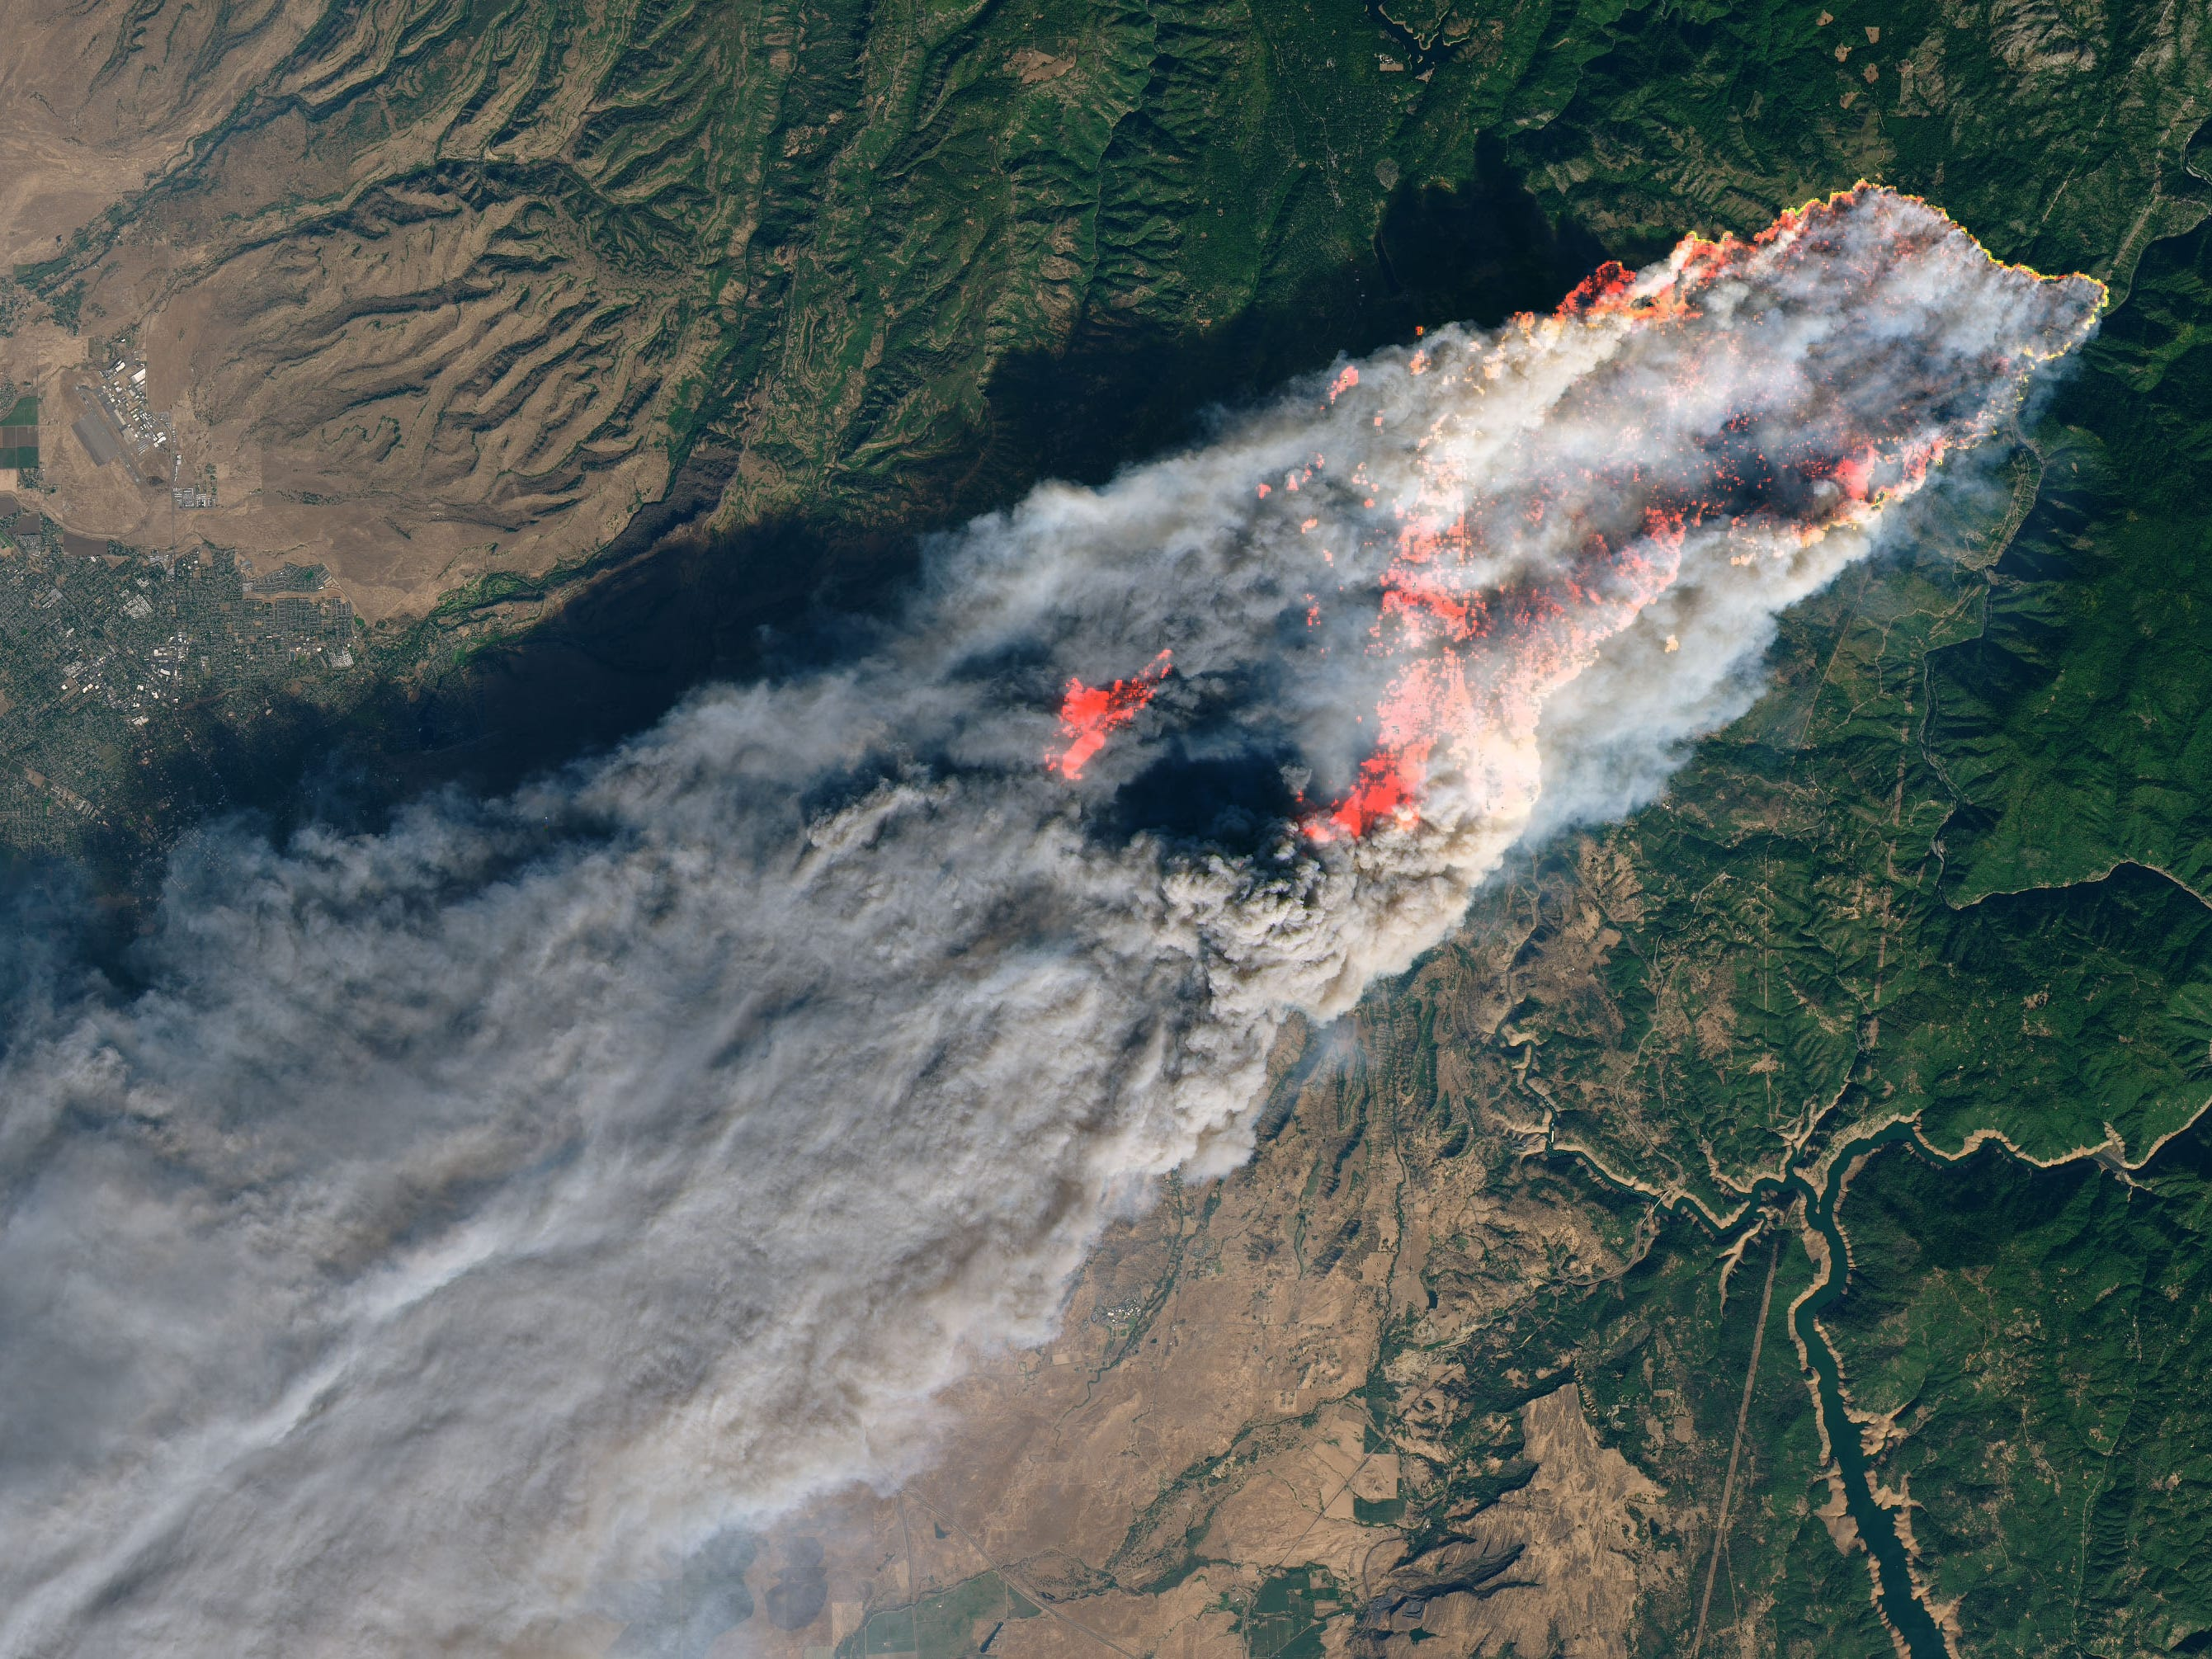 An image from a NASA earth satellite from 10:45 a.m. Thursday shows the extent of the Camp Fire. The photo uses shortwave-infrared light to highlight the active fire.